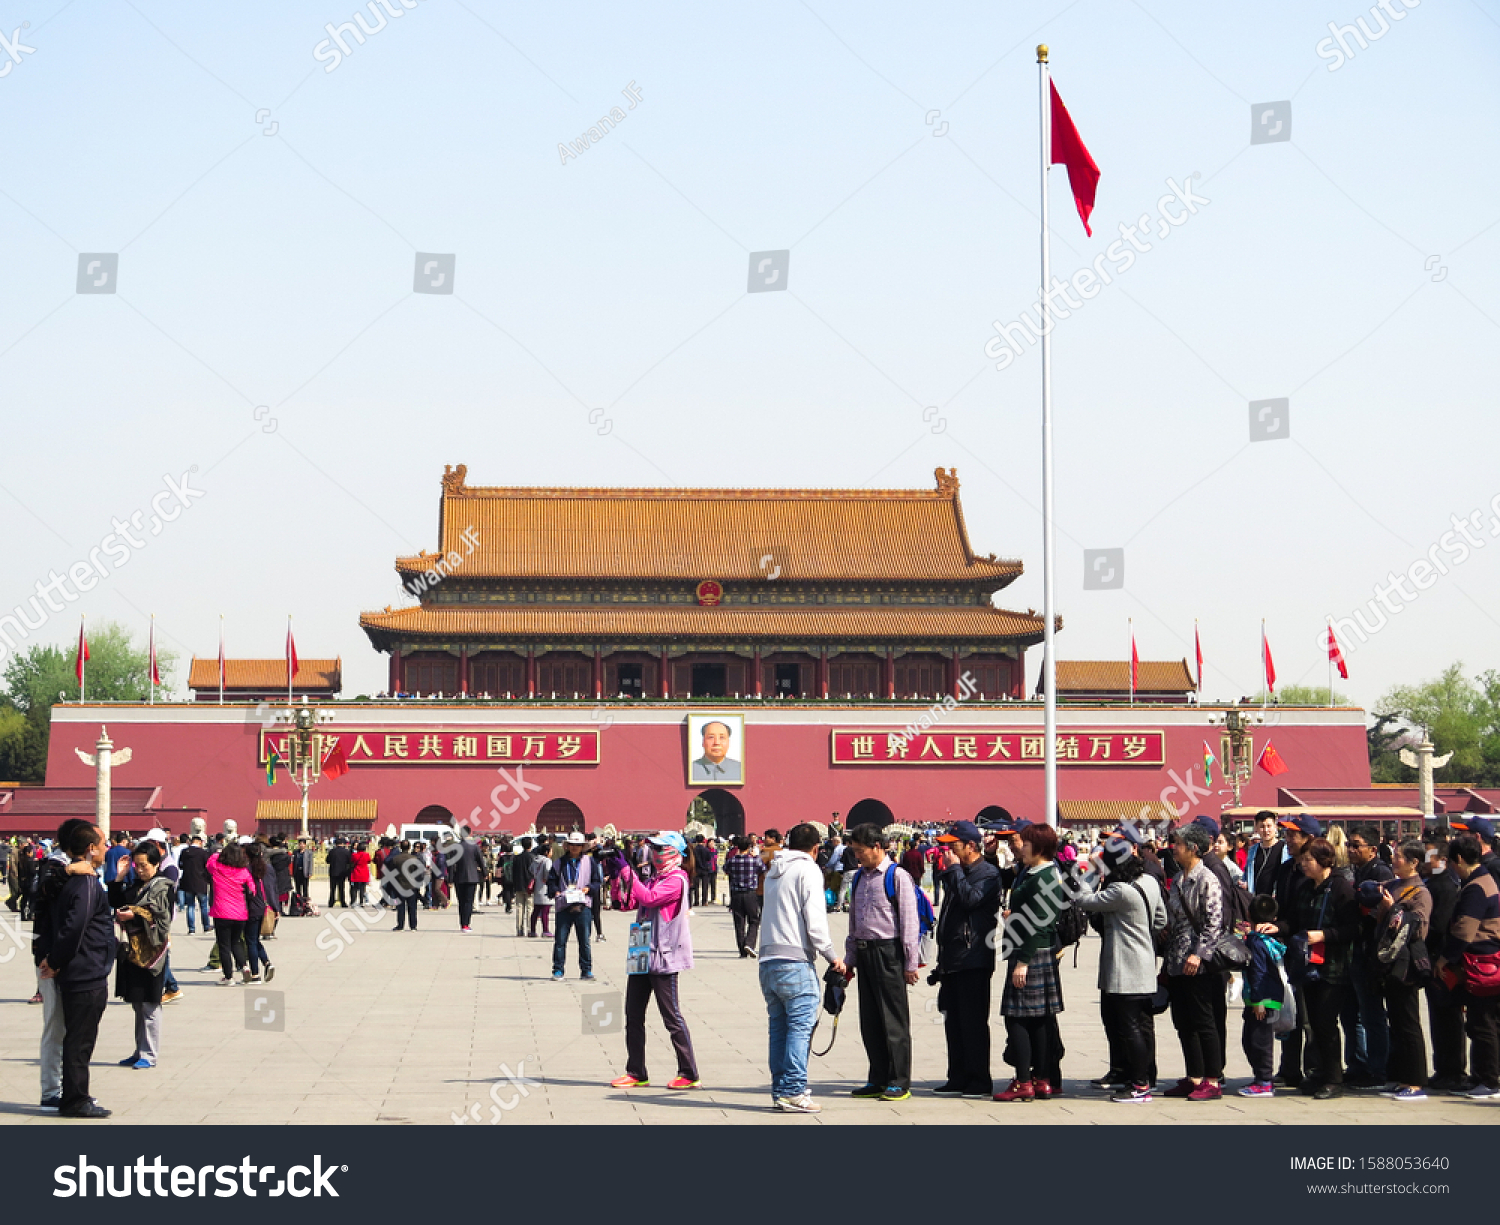 stock-photo-beijing-china-april-view-of-